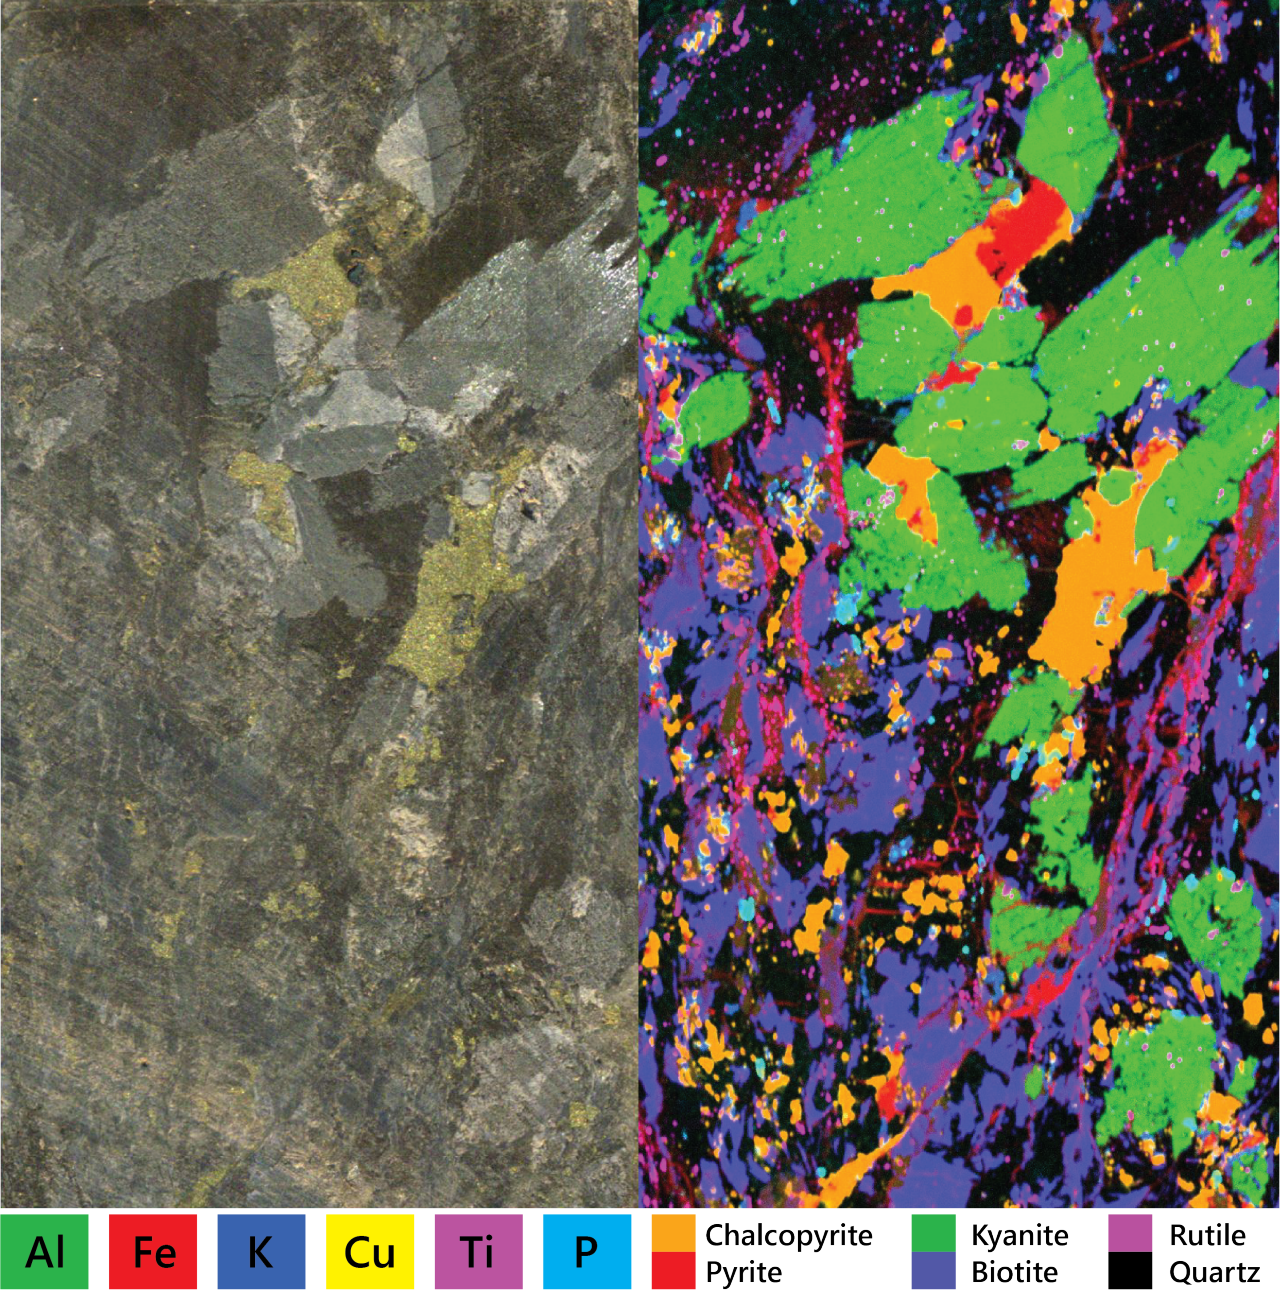 M4 TORNADO elemental map of copper mineralization